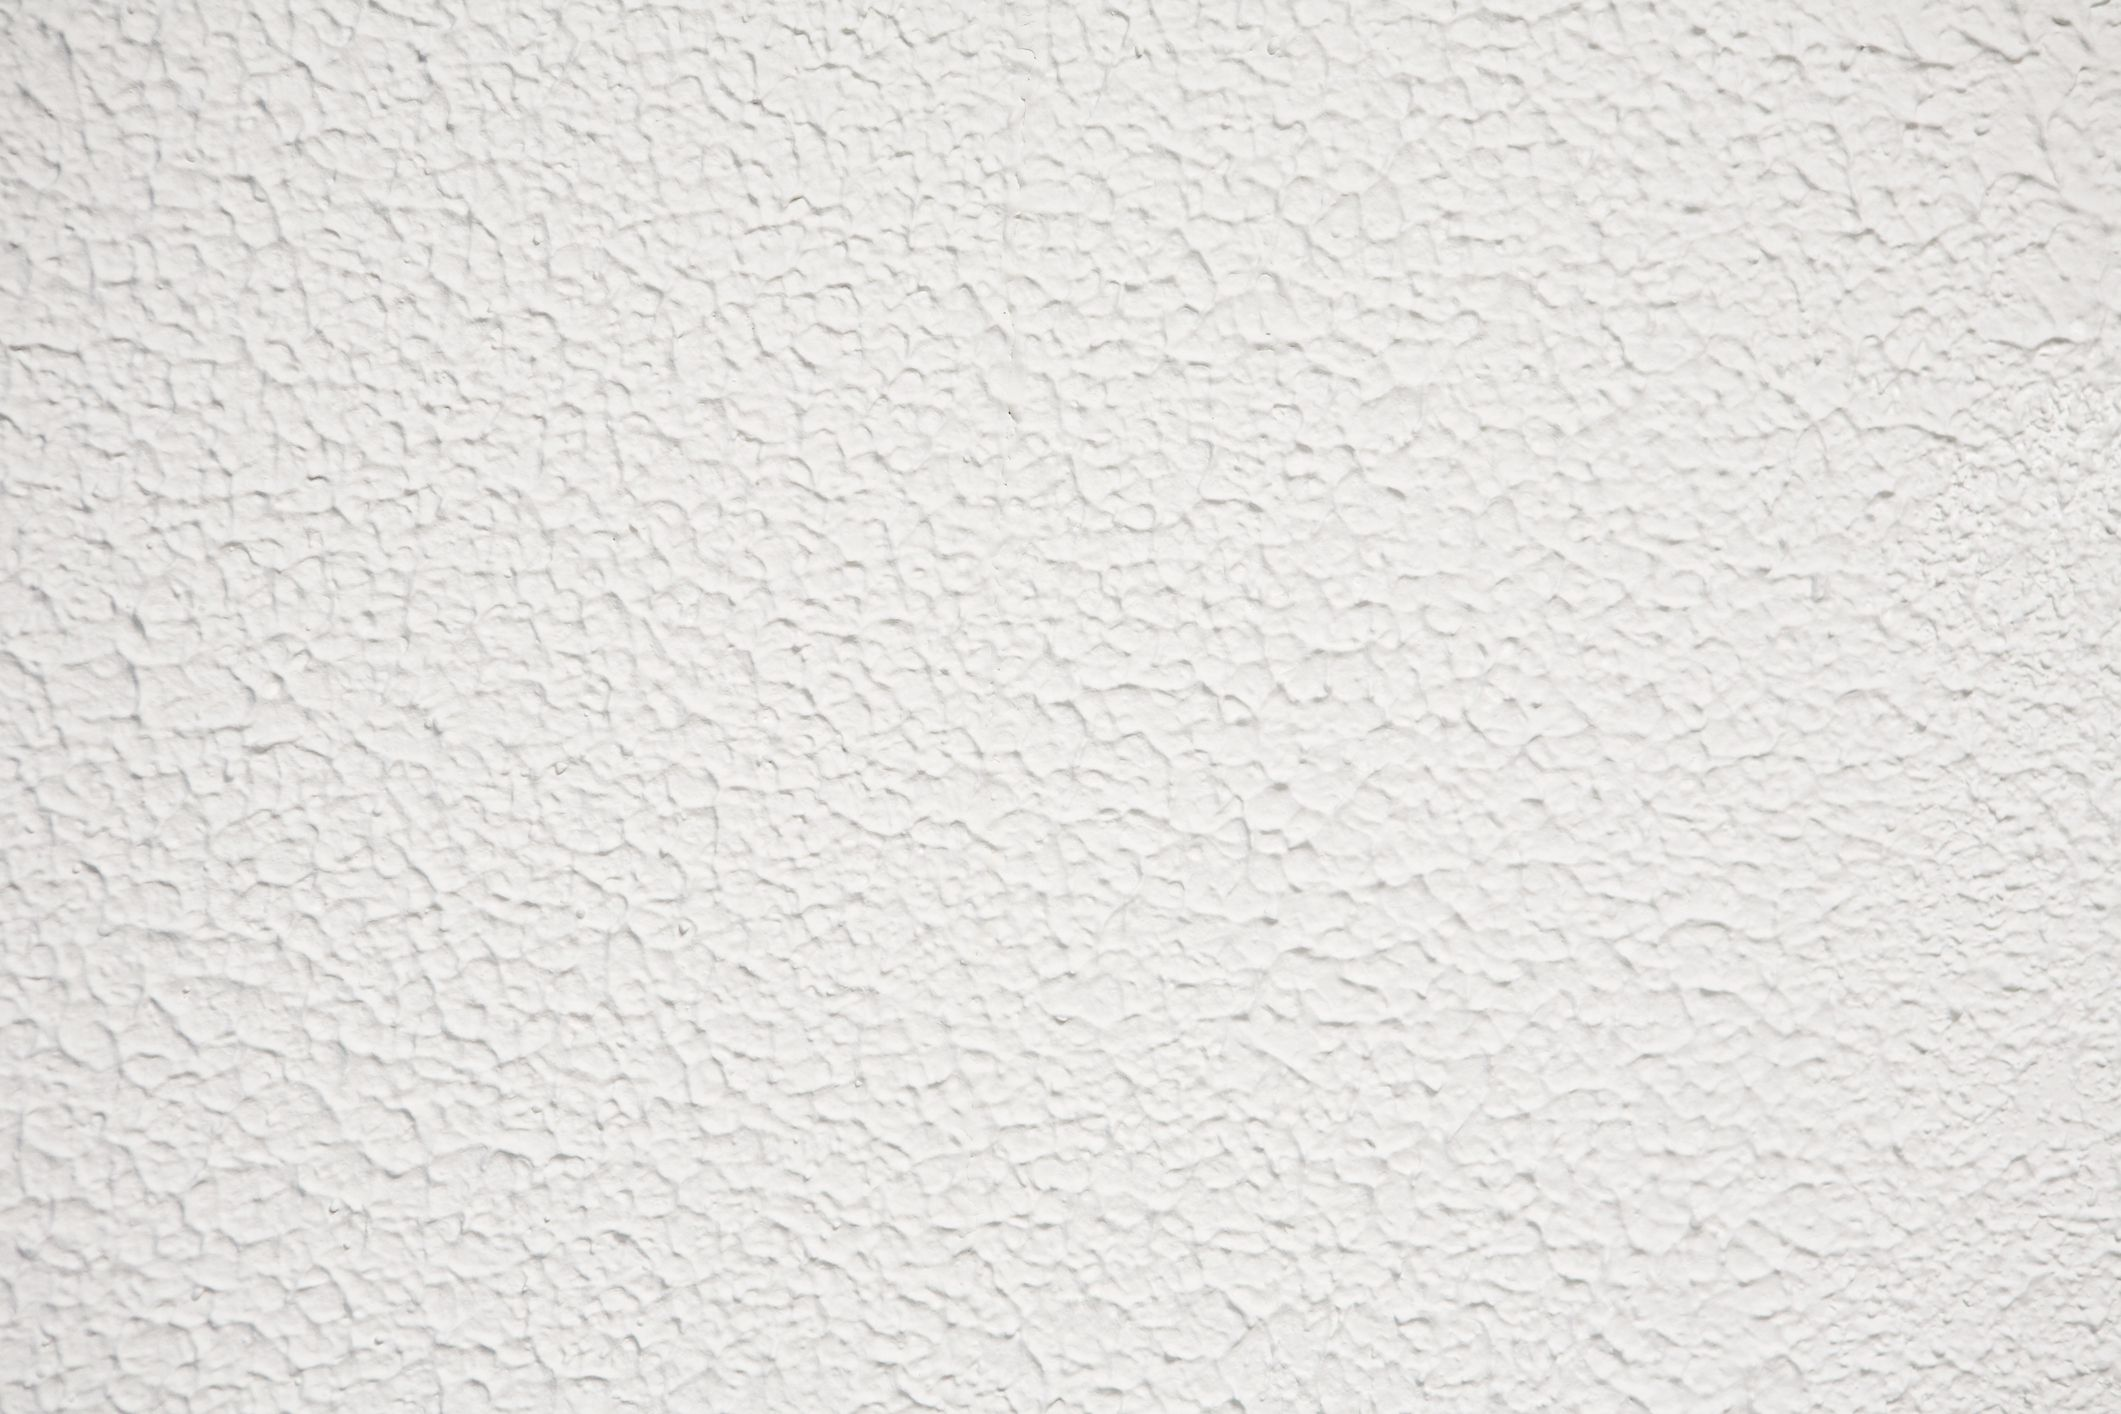 Cover Popcorn Ceiling And Make It Smooth